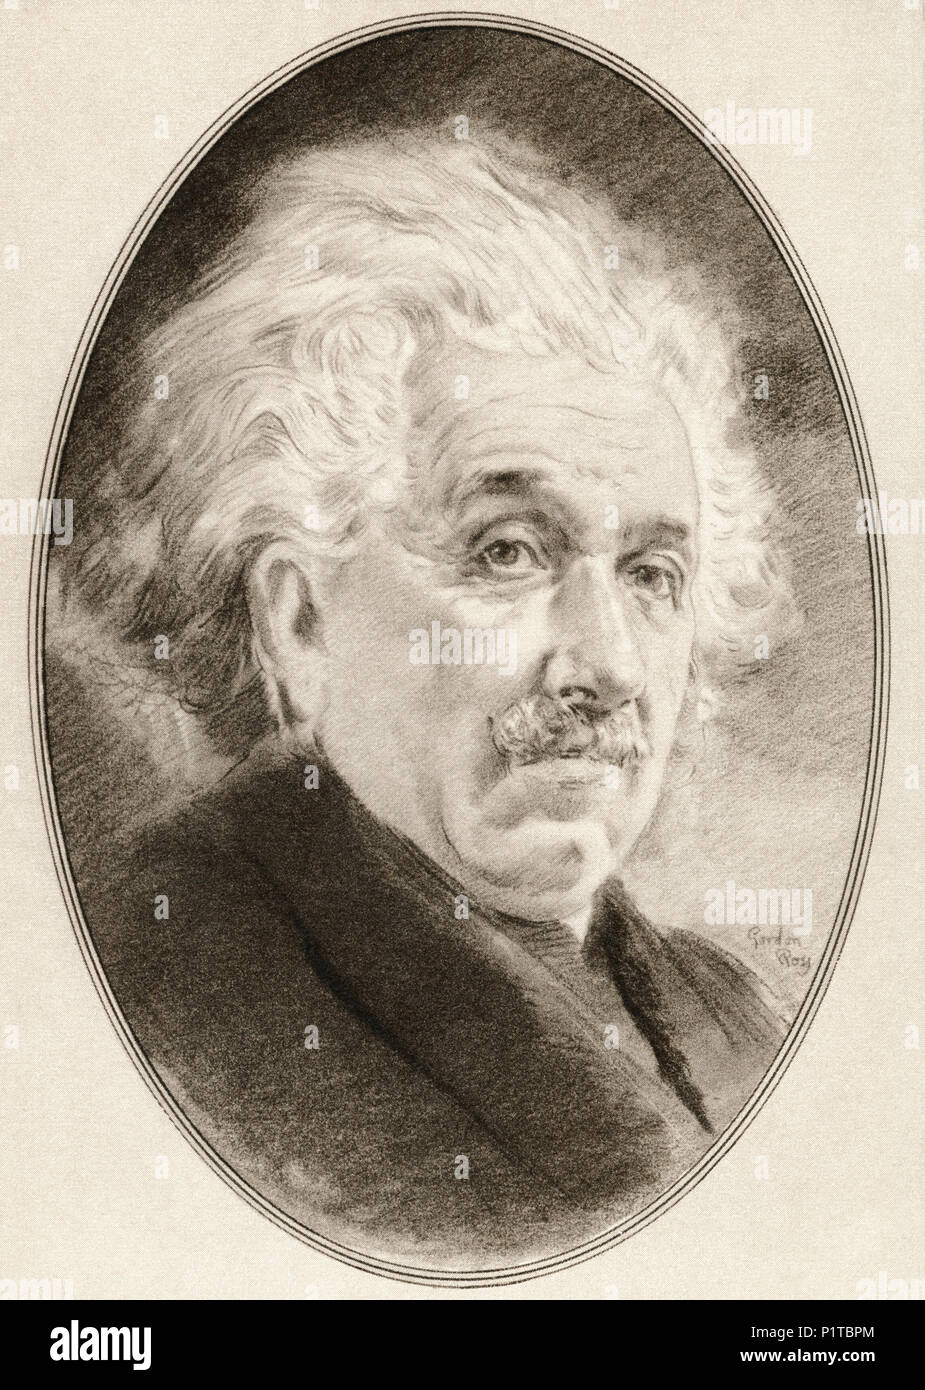 Albert Einstein, 1879 – 1955.  German-born theoretical physicist who developed the theory of relativity.  Illustration by Gordon Ross, American artist and illustrator (1873-1946), from Living Biographies of Great Scientists. - Stock Image